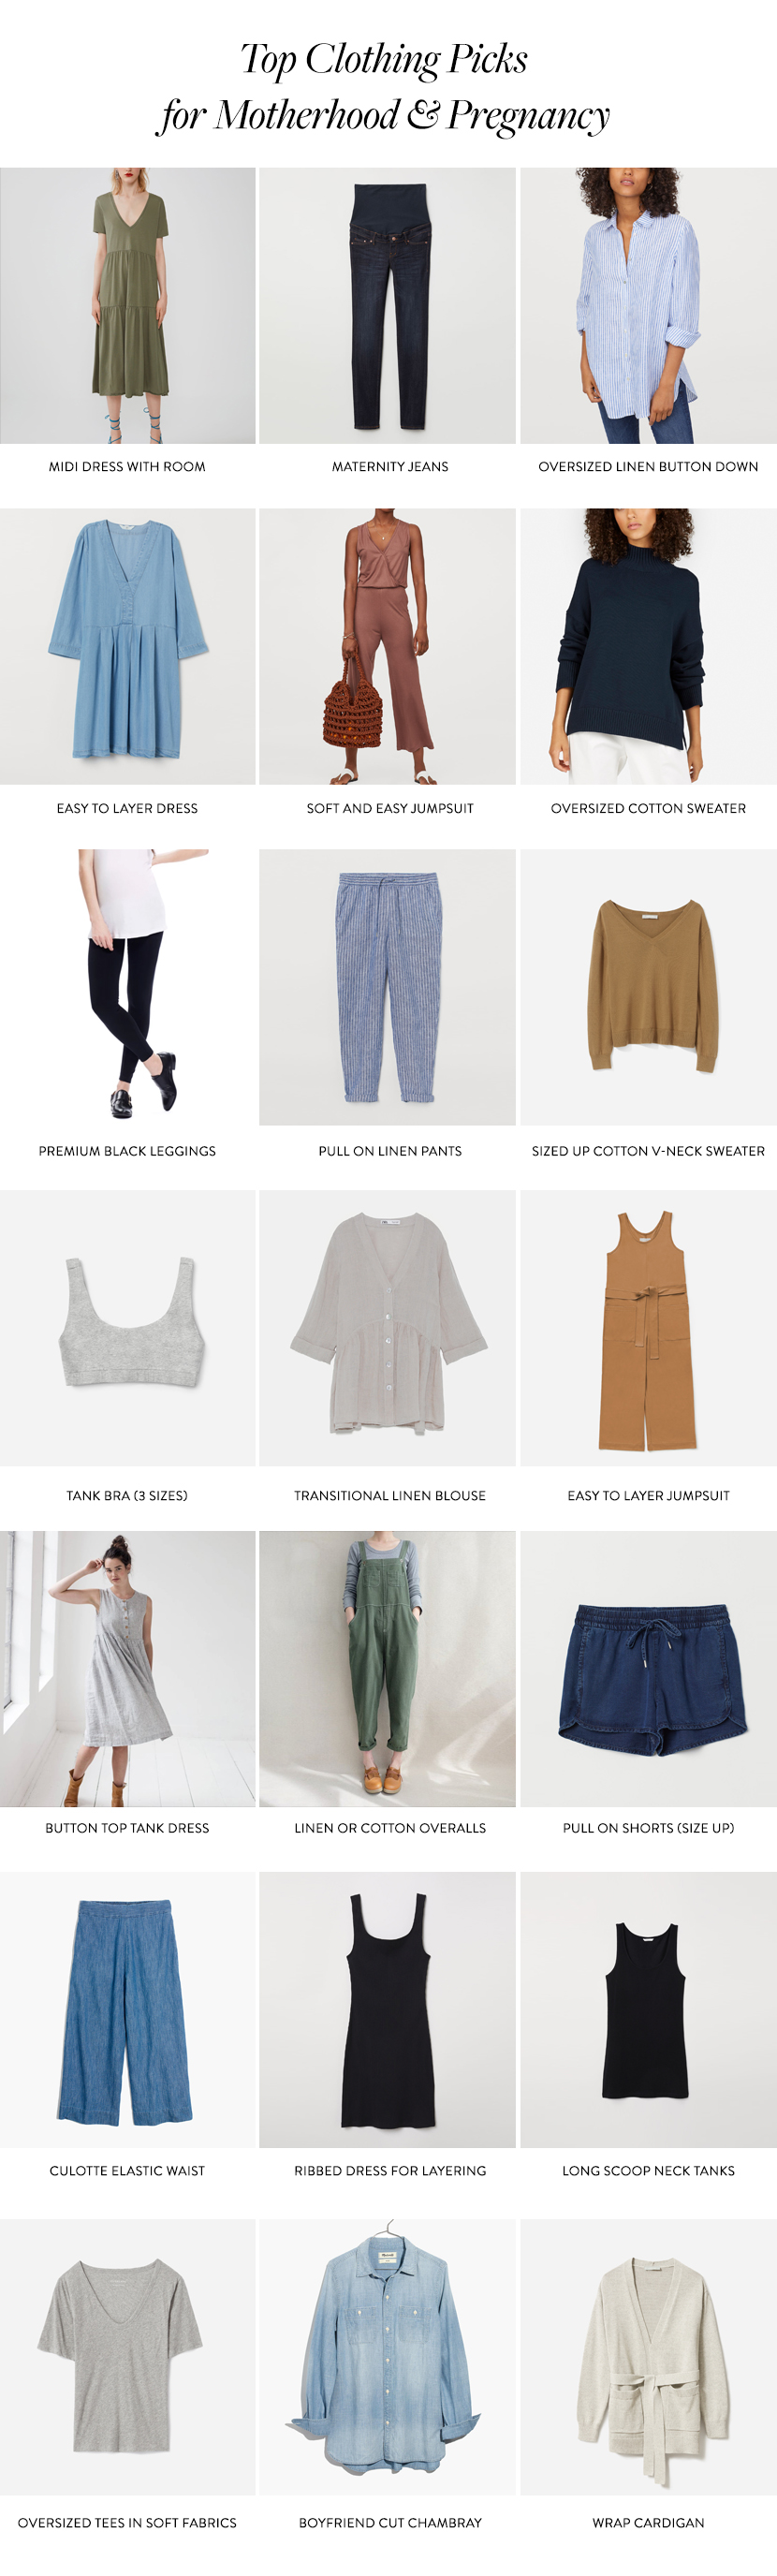 Transitional Wardrobe for Pregnancy and Motherhood on The Fresh Exchange